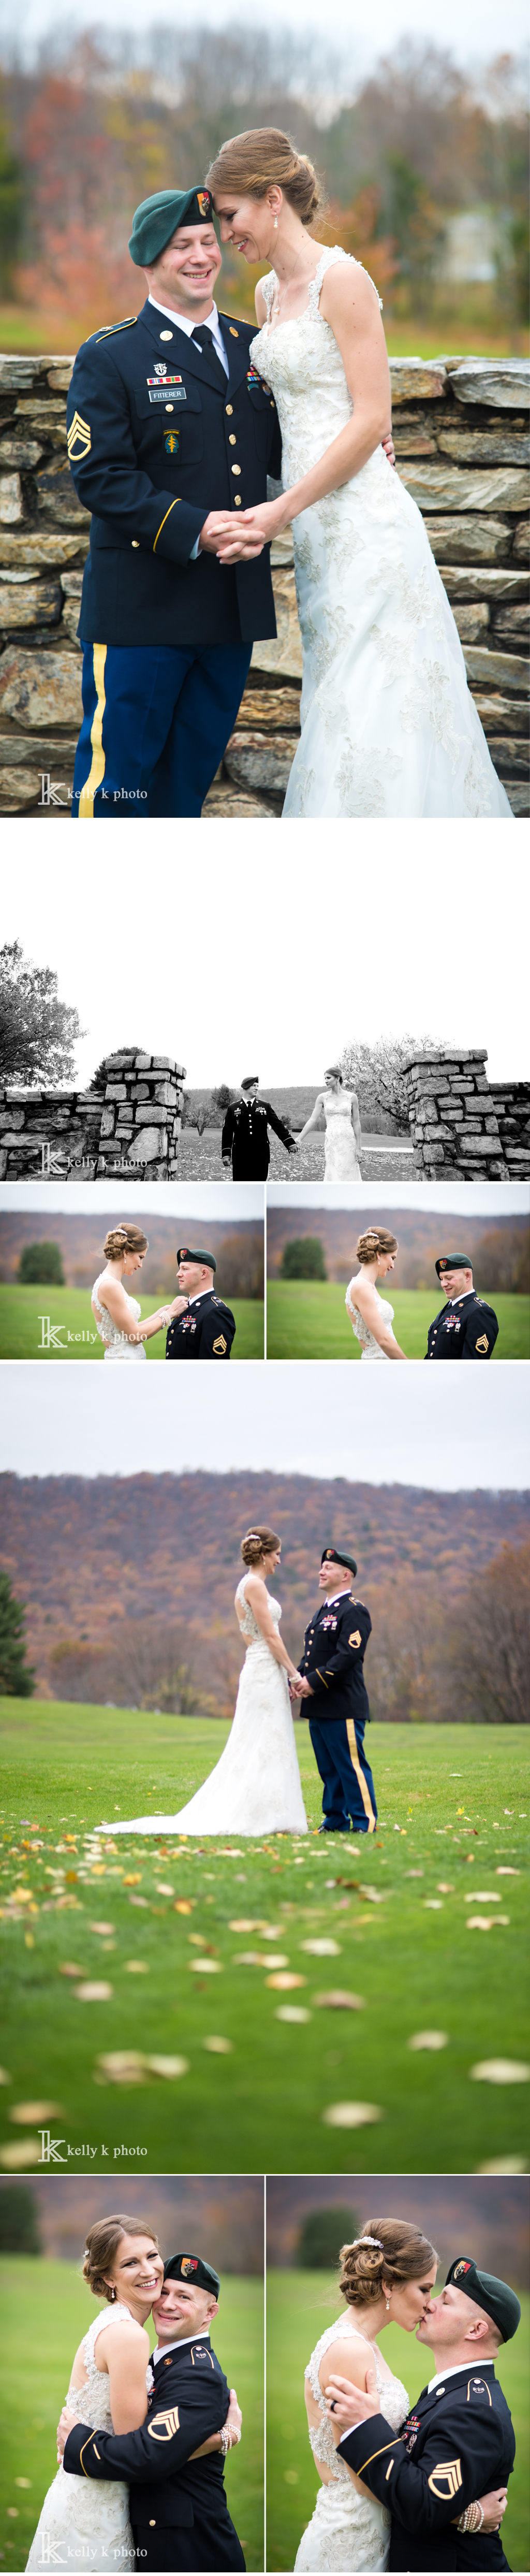 KellyKPhoto_WeddingPhotography_HudsonWI_4